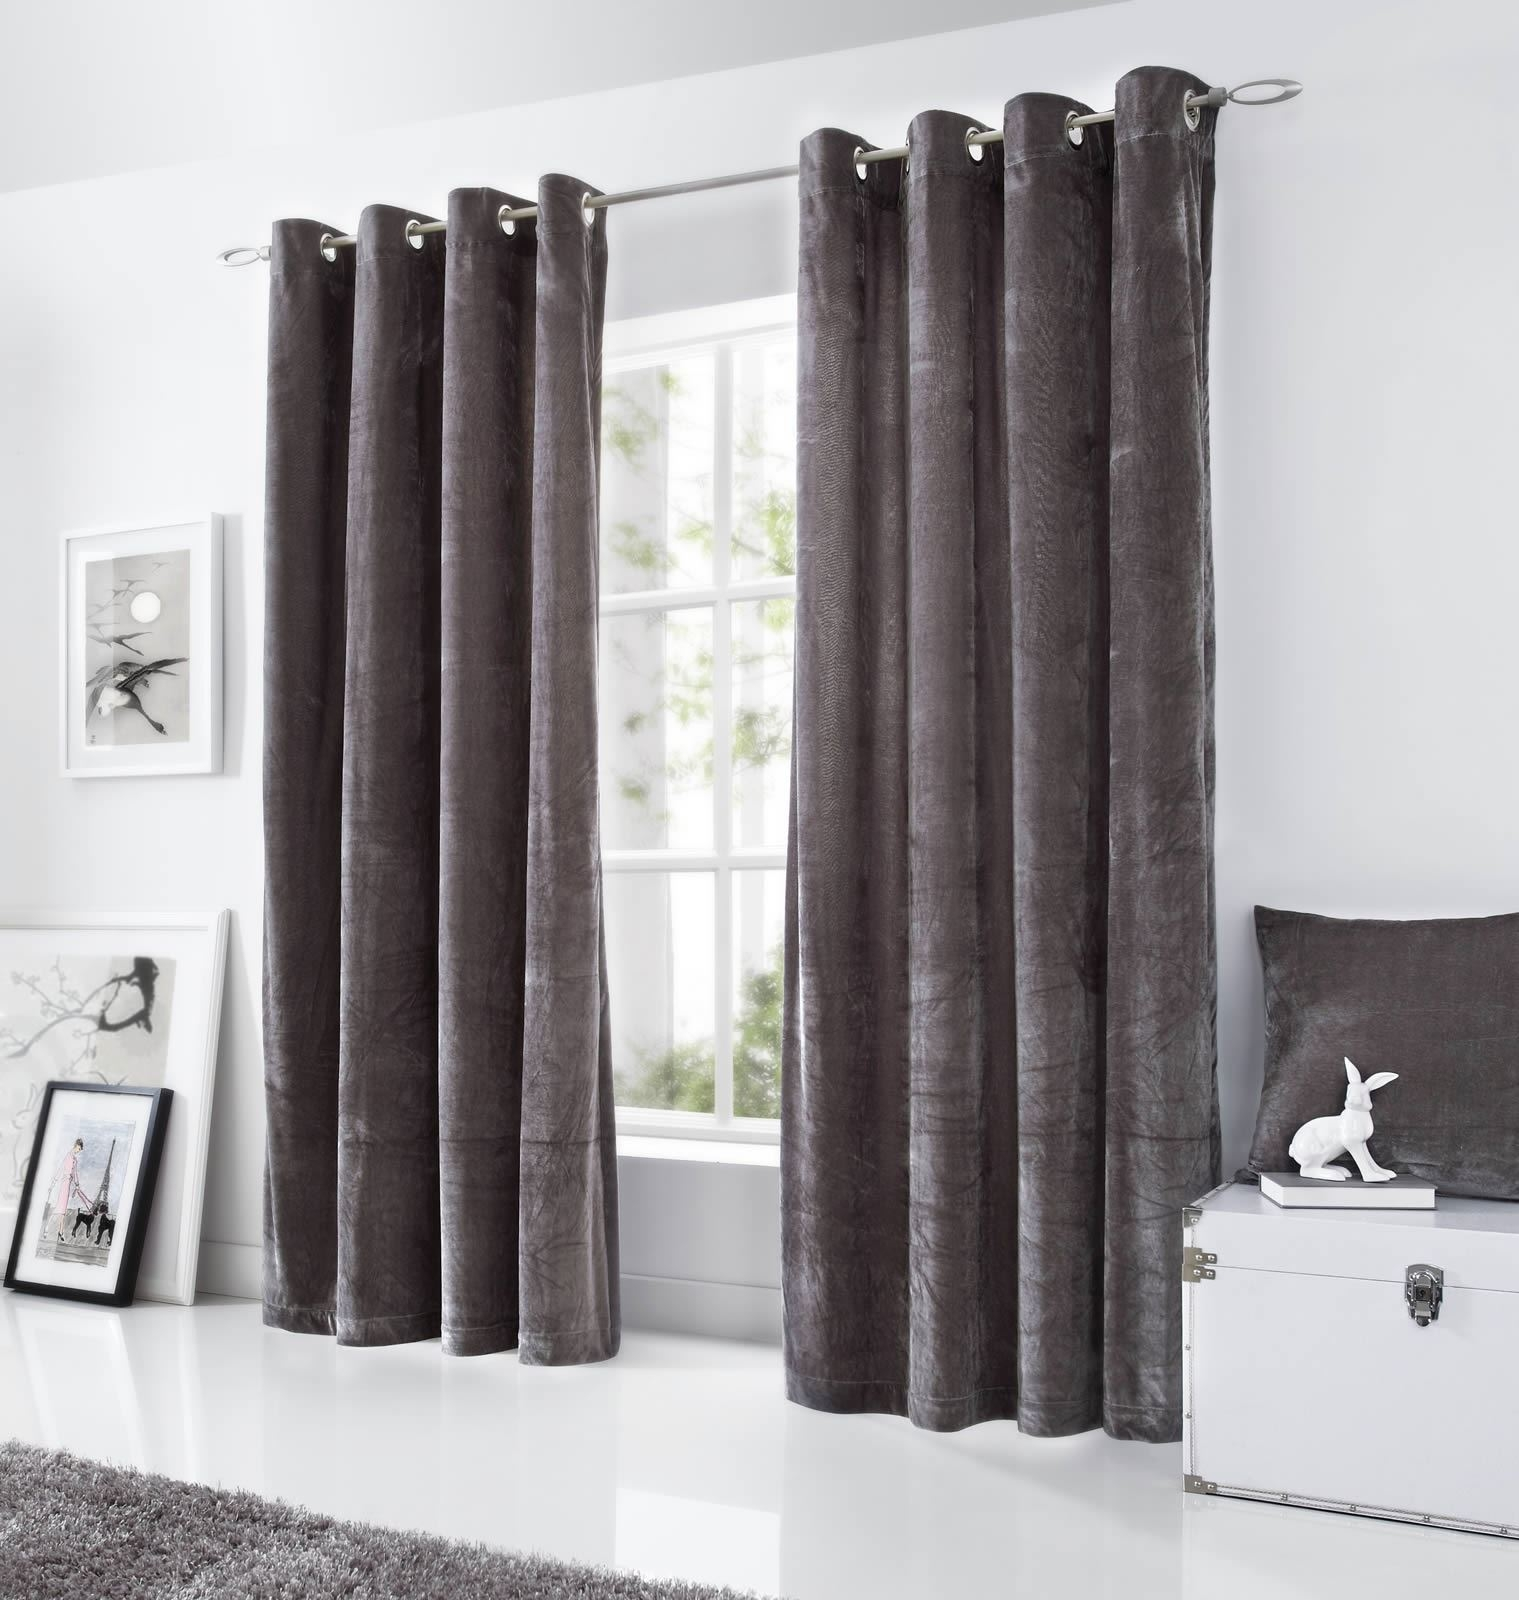 Velvet Eyelet Curtains Lined Ringtop Curtain Pairs Grey Black Mink Intended For Grey Eyelet Curtains (Image 21 of 25)